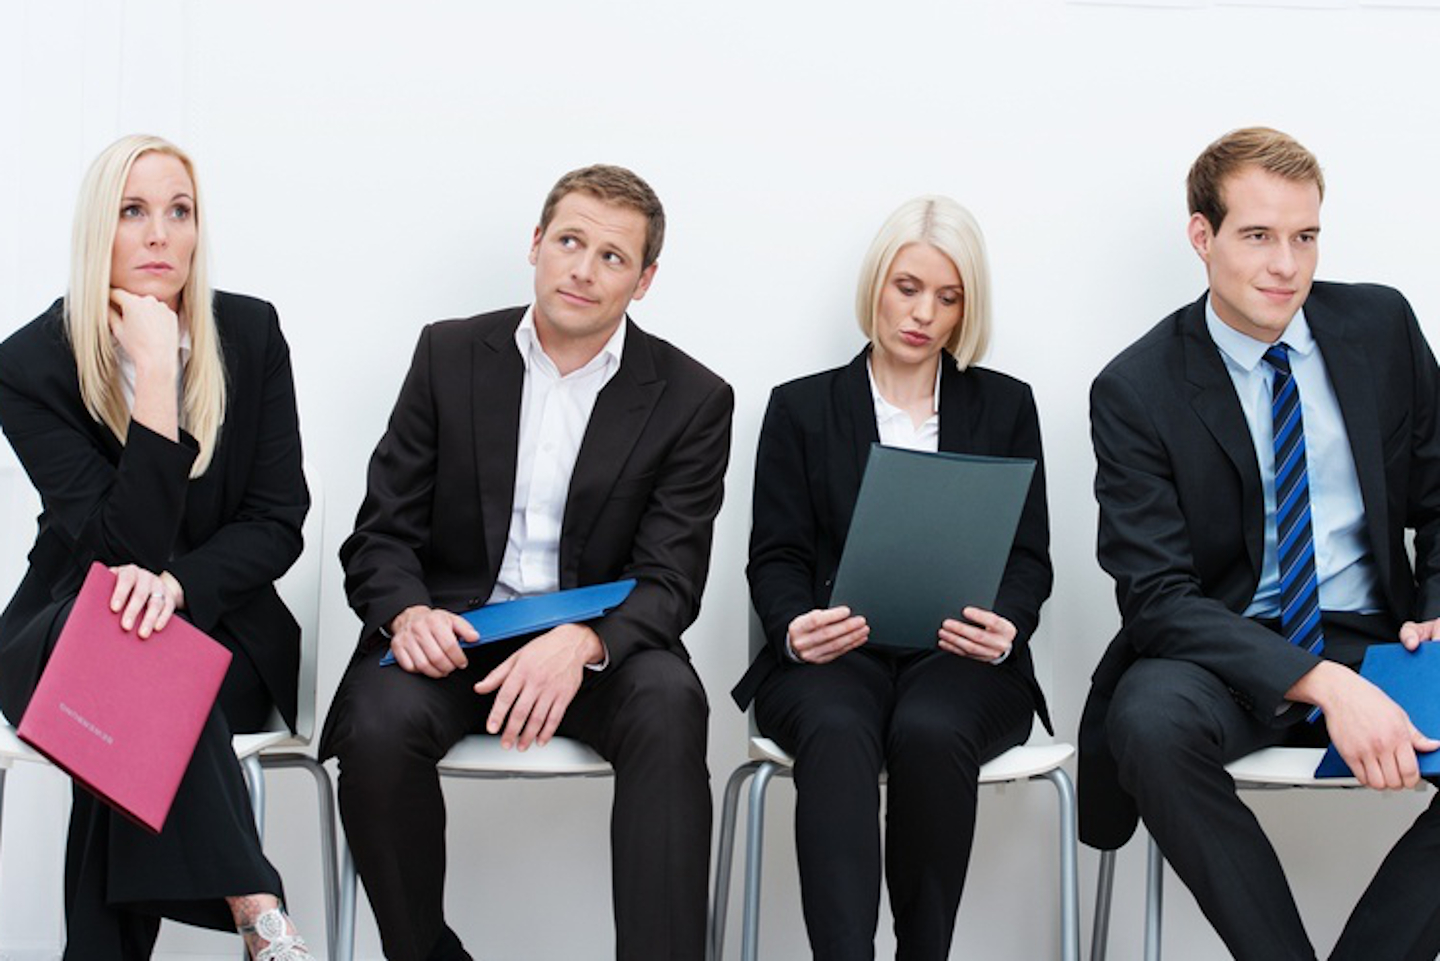 How To Prepare For Any Interview - Career Coaching Tips